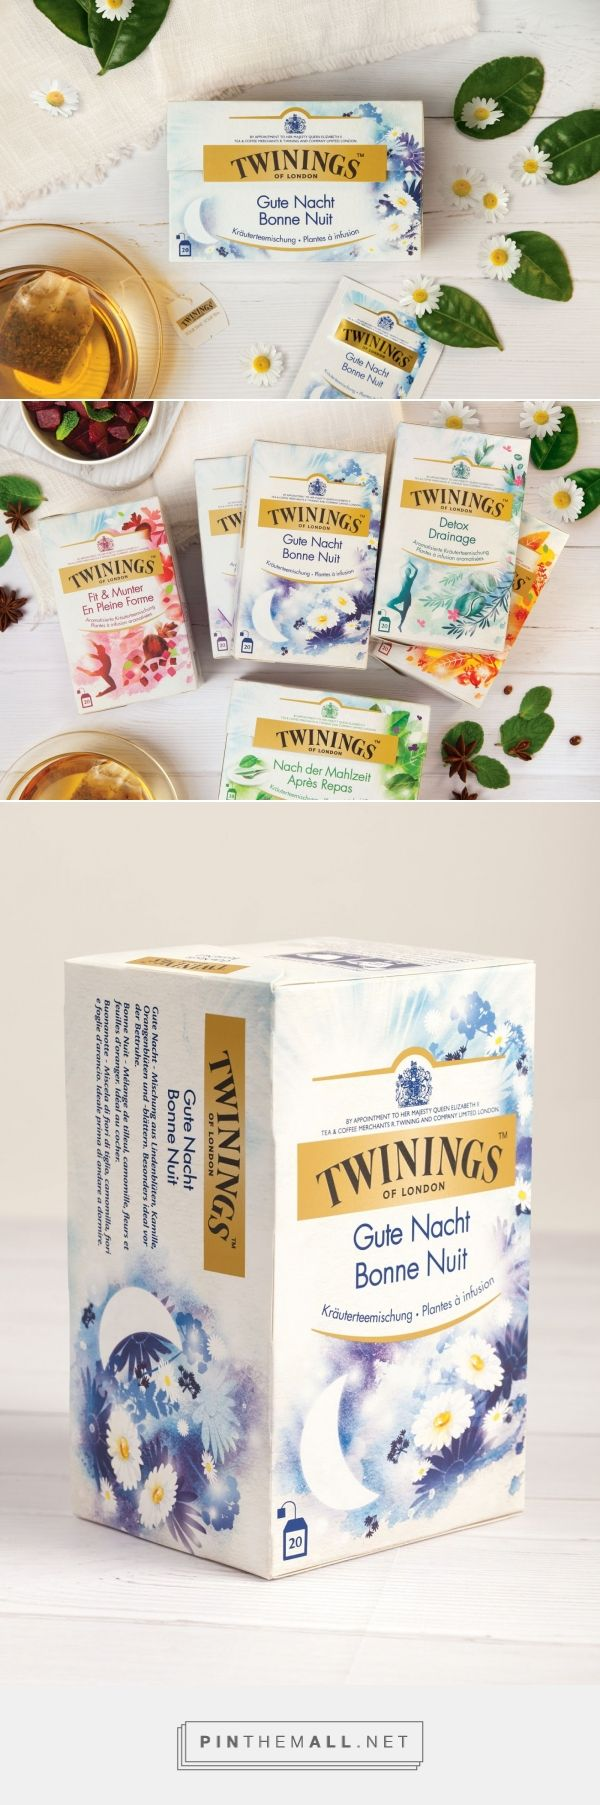 Twinings Swiss Wellness - Packaging of the World - Creative Package Design Gallery - http://www.packagingoftheworld.com/2016/11/twinings-swiss-wellness.html